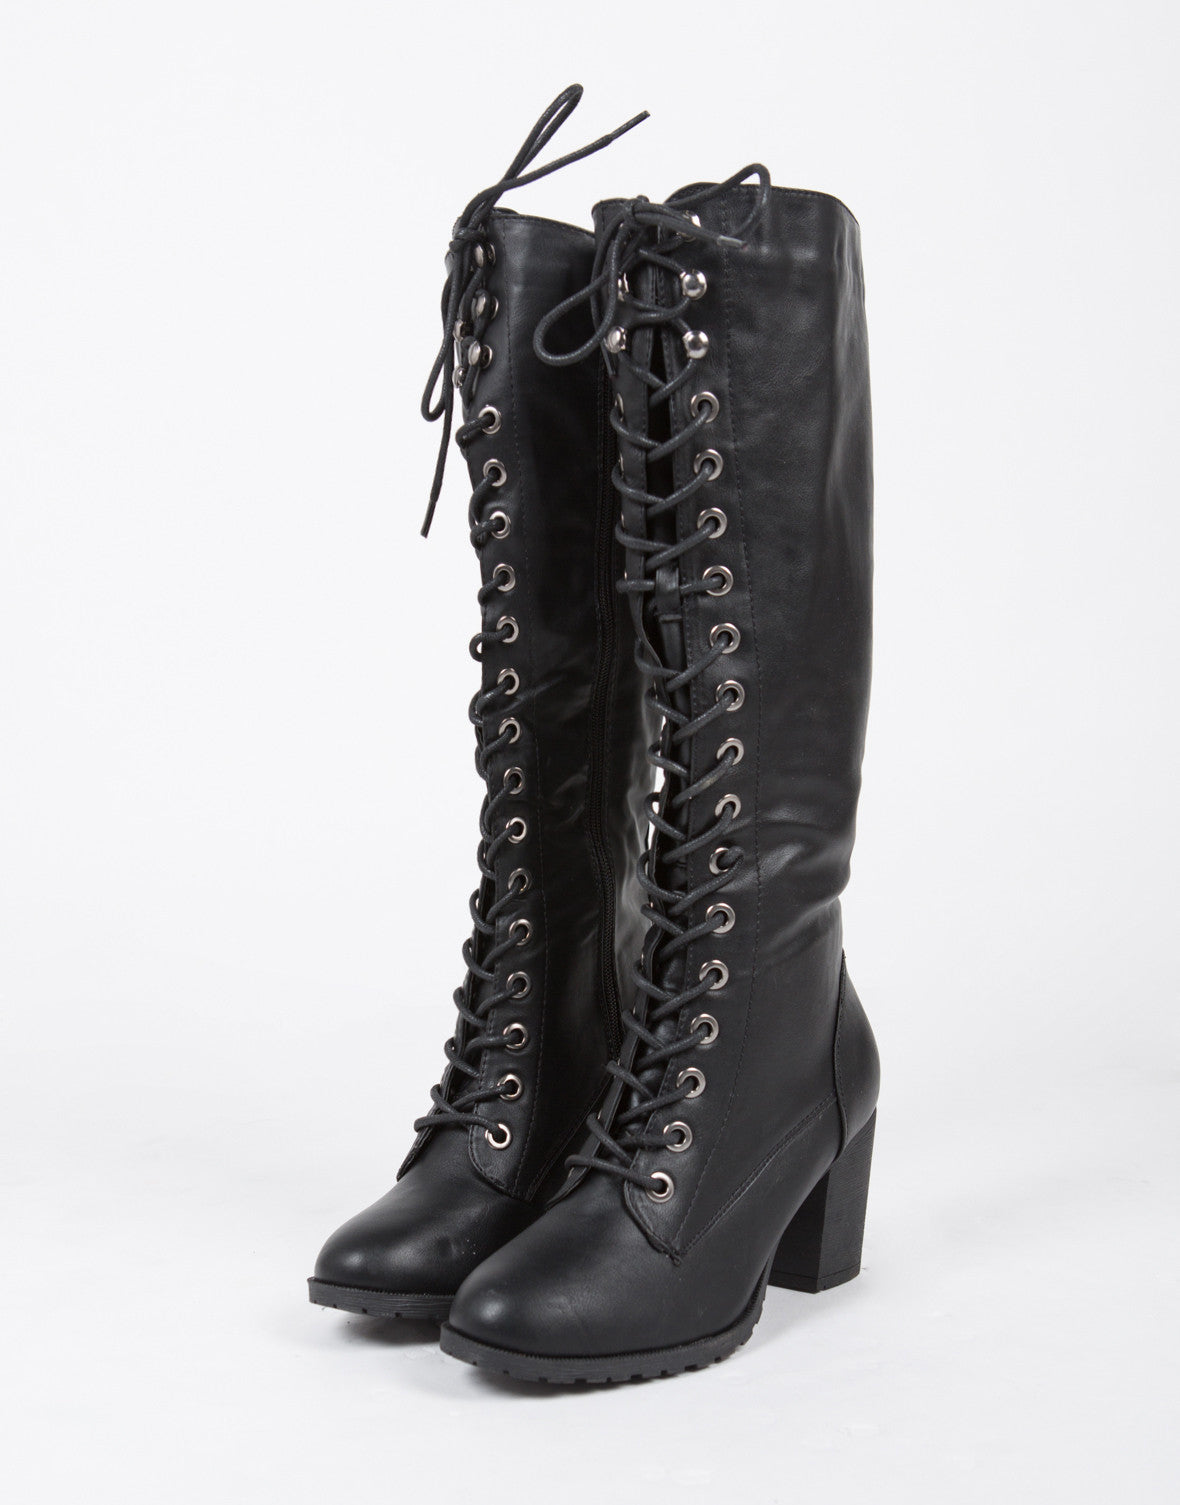 69bcc7779fc Tall Lace Up Boots